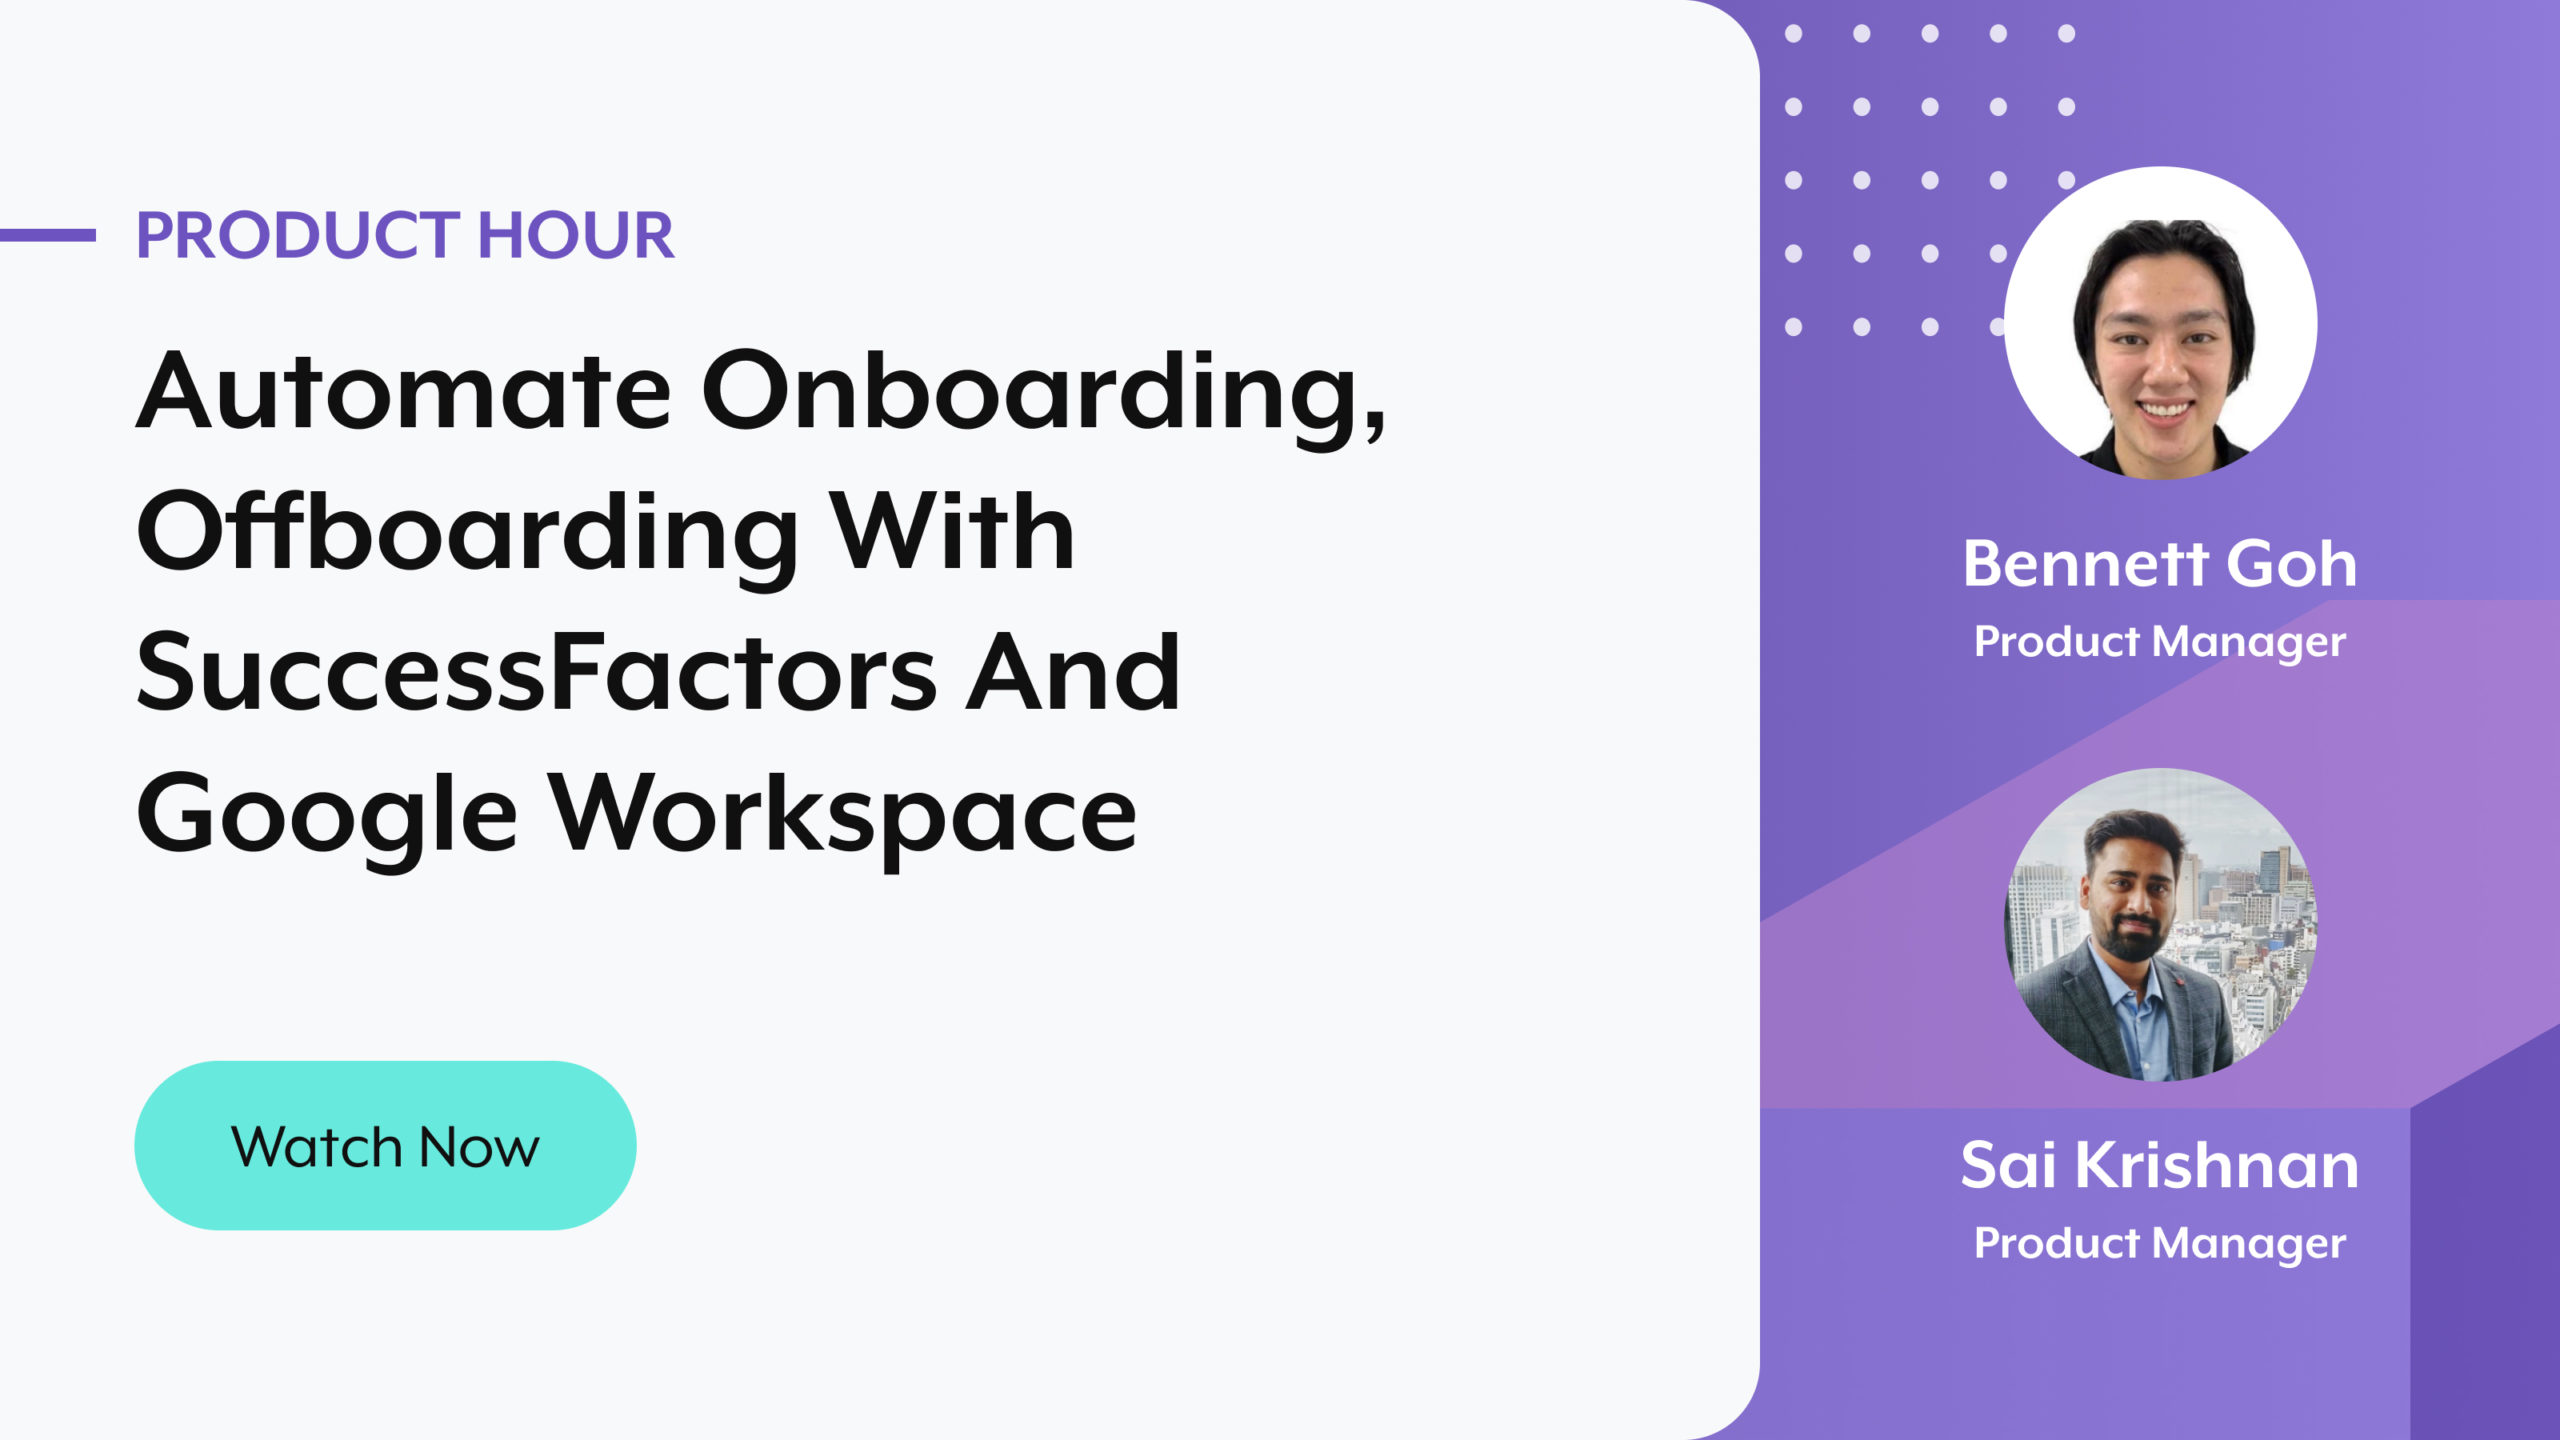 automate onboarding, offboarding